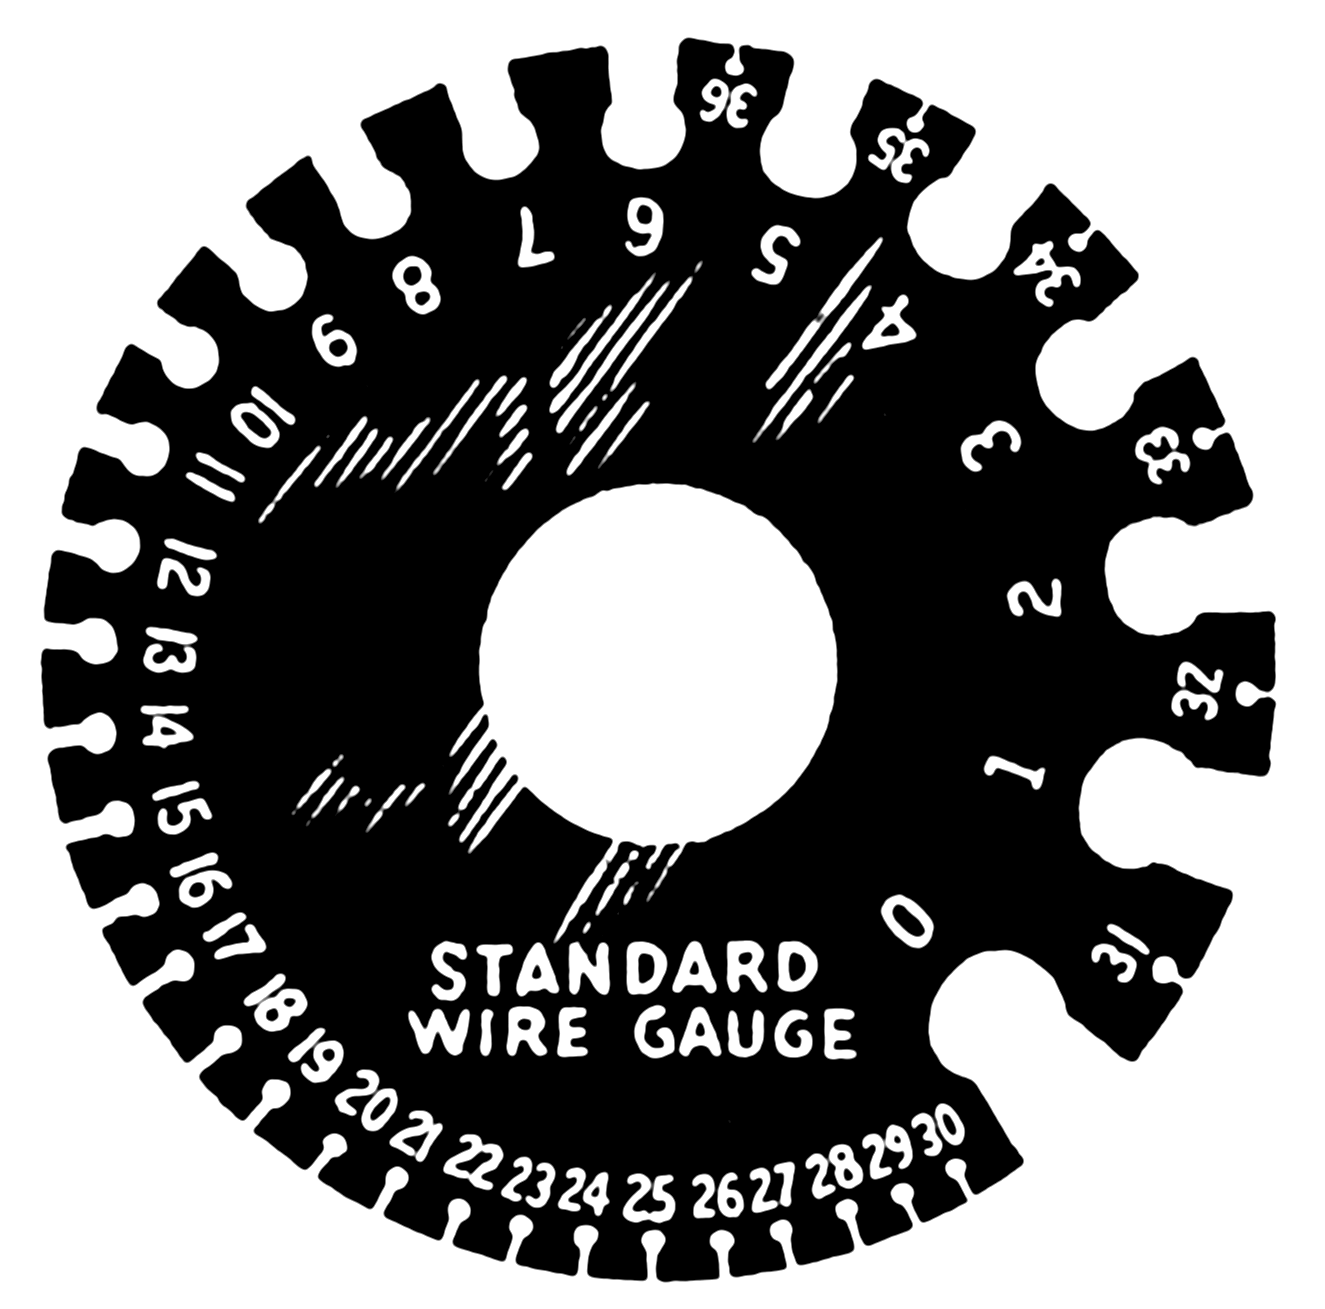 Marine wire and cable marine wire size calculation how to calculate the correct marine wire size keyboard keysfo Image collections